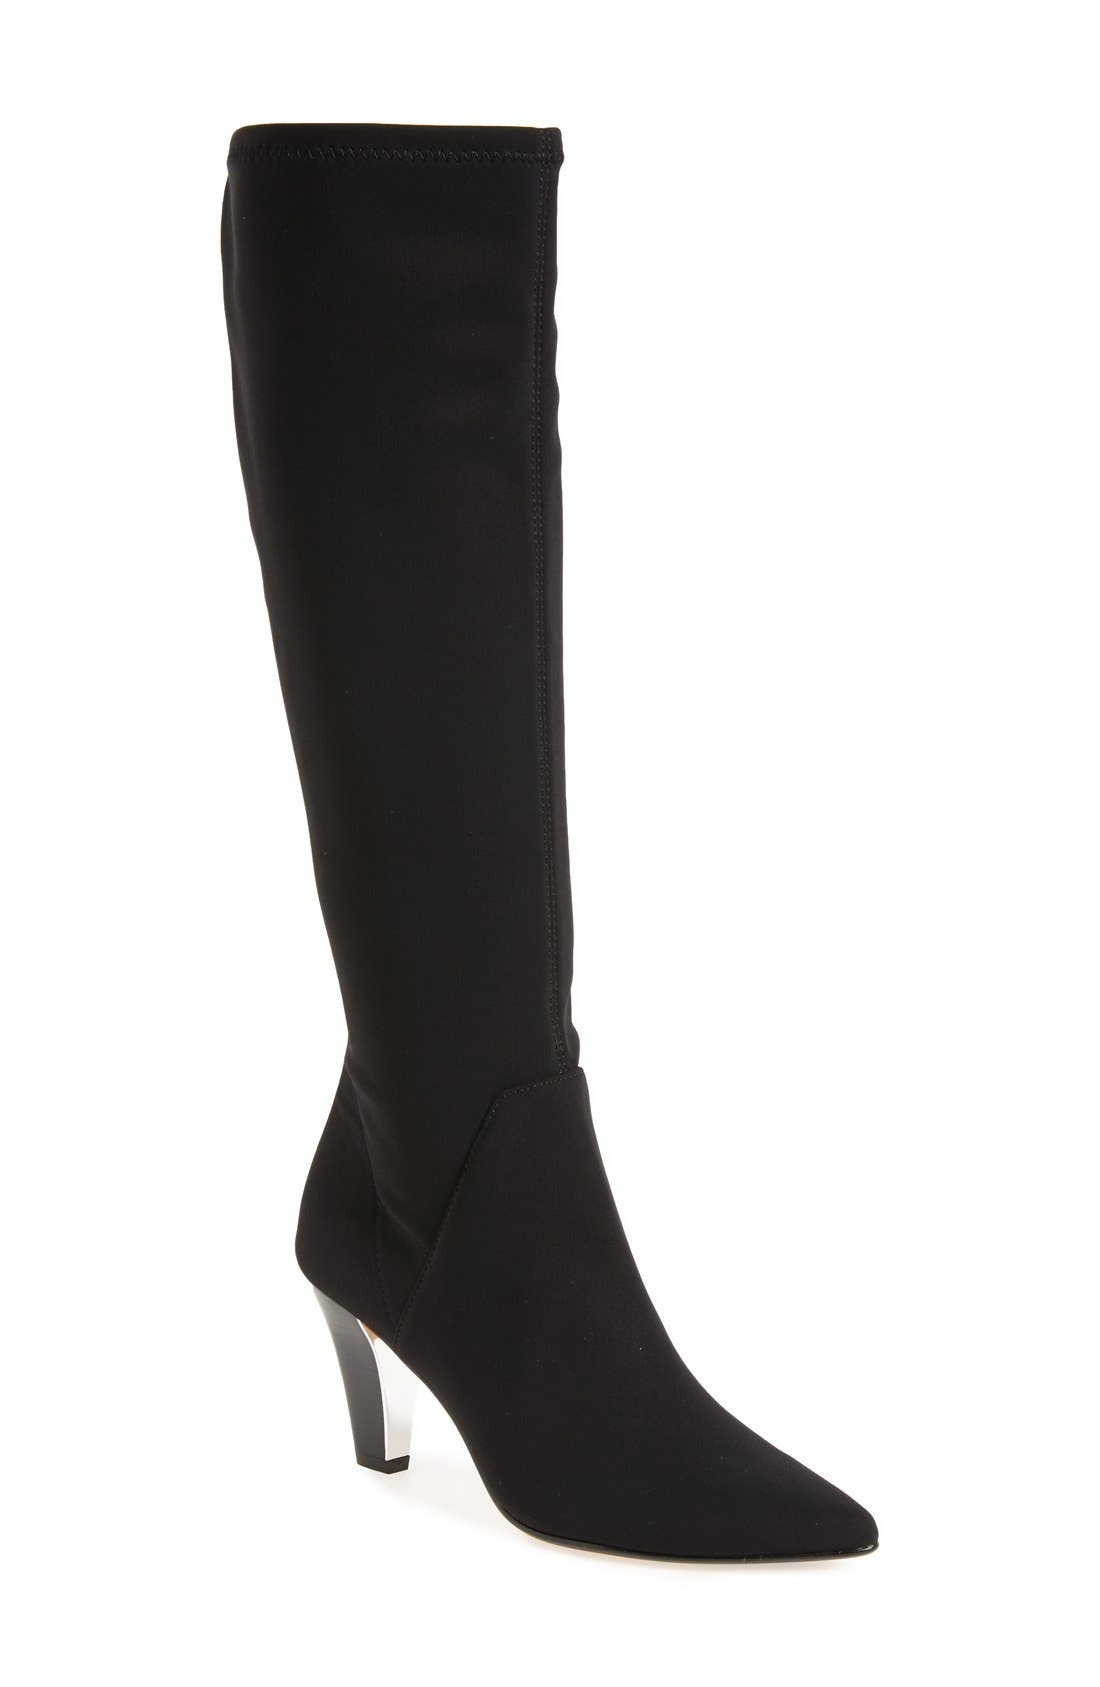 Main Image - Donald J Pliner 'Tessa' Knee High Boot (Women)